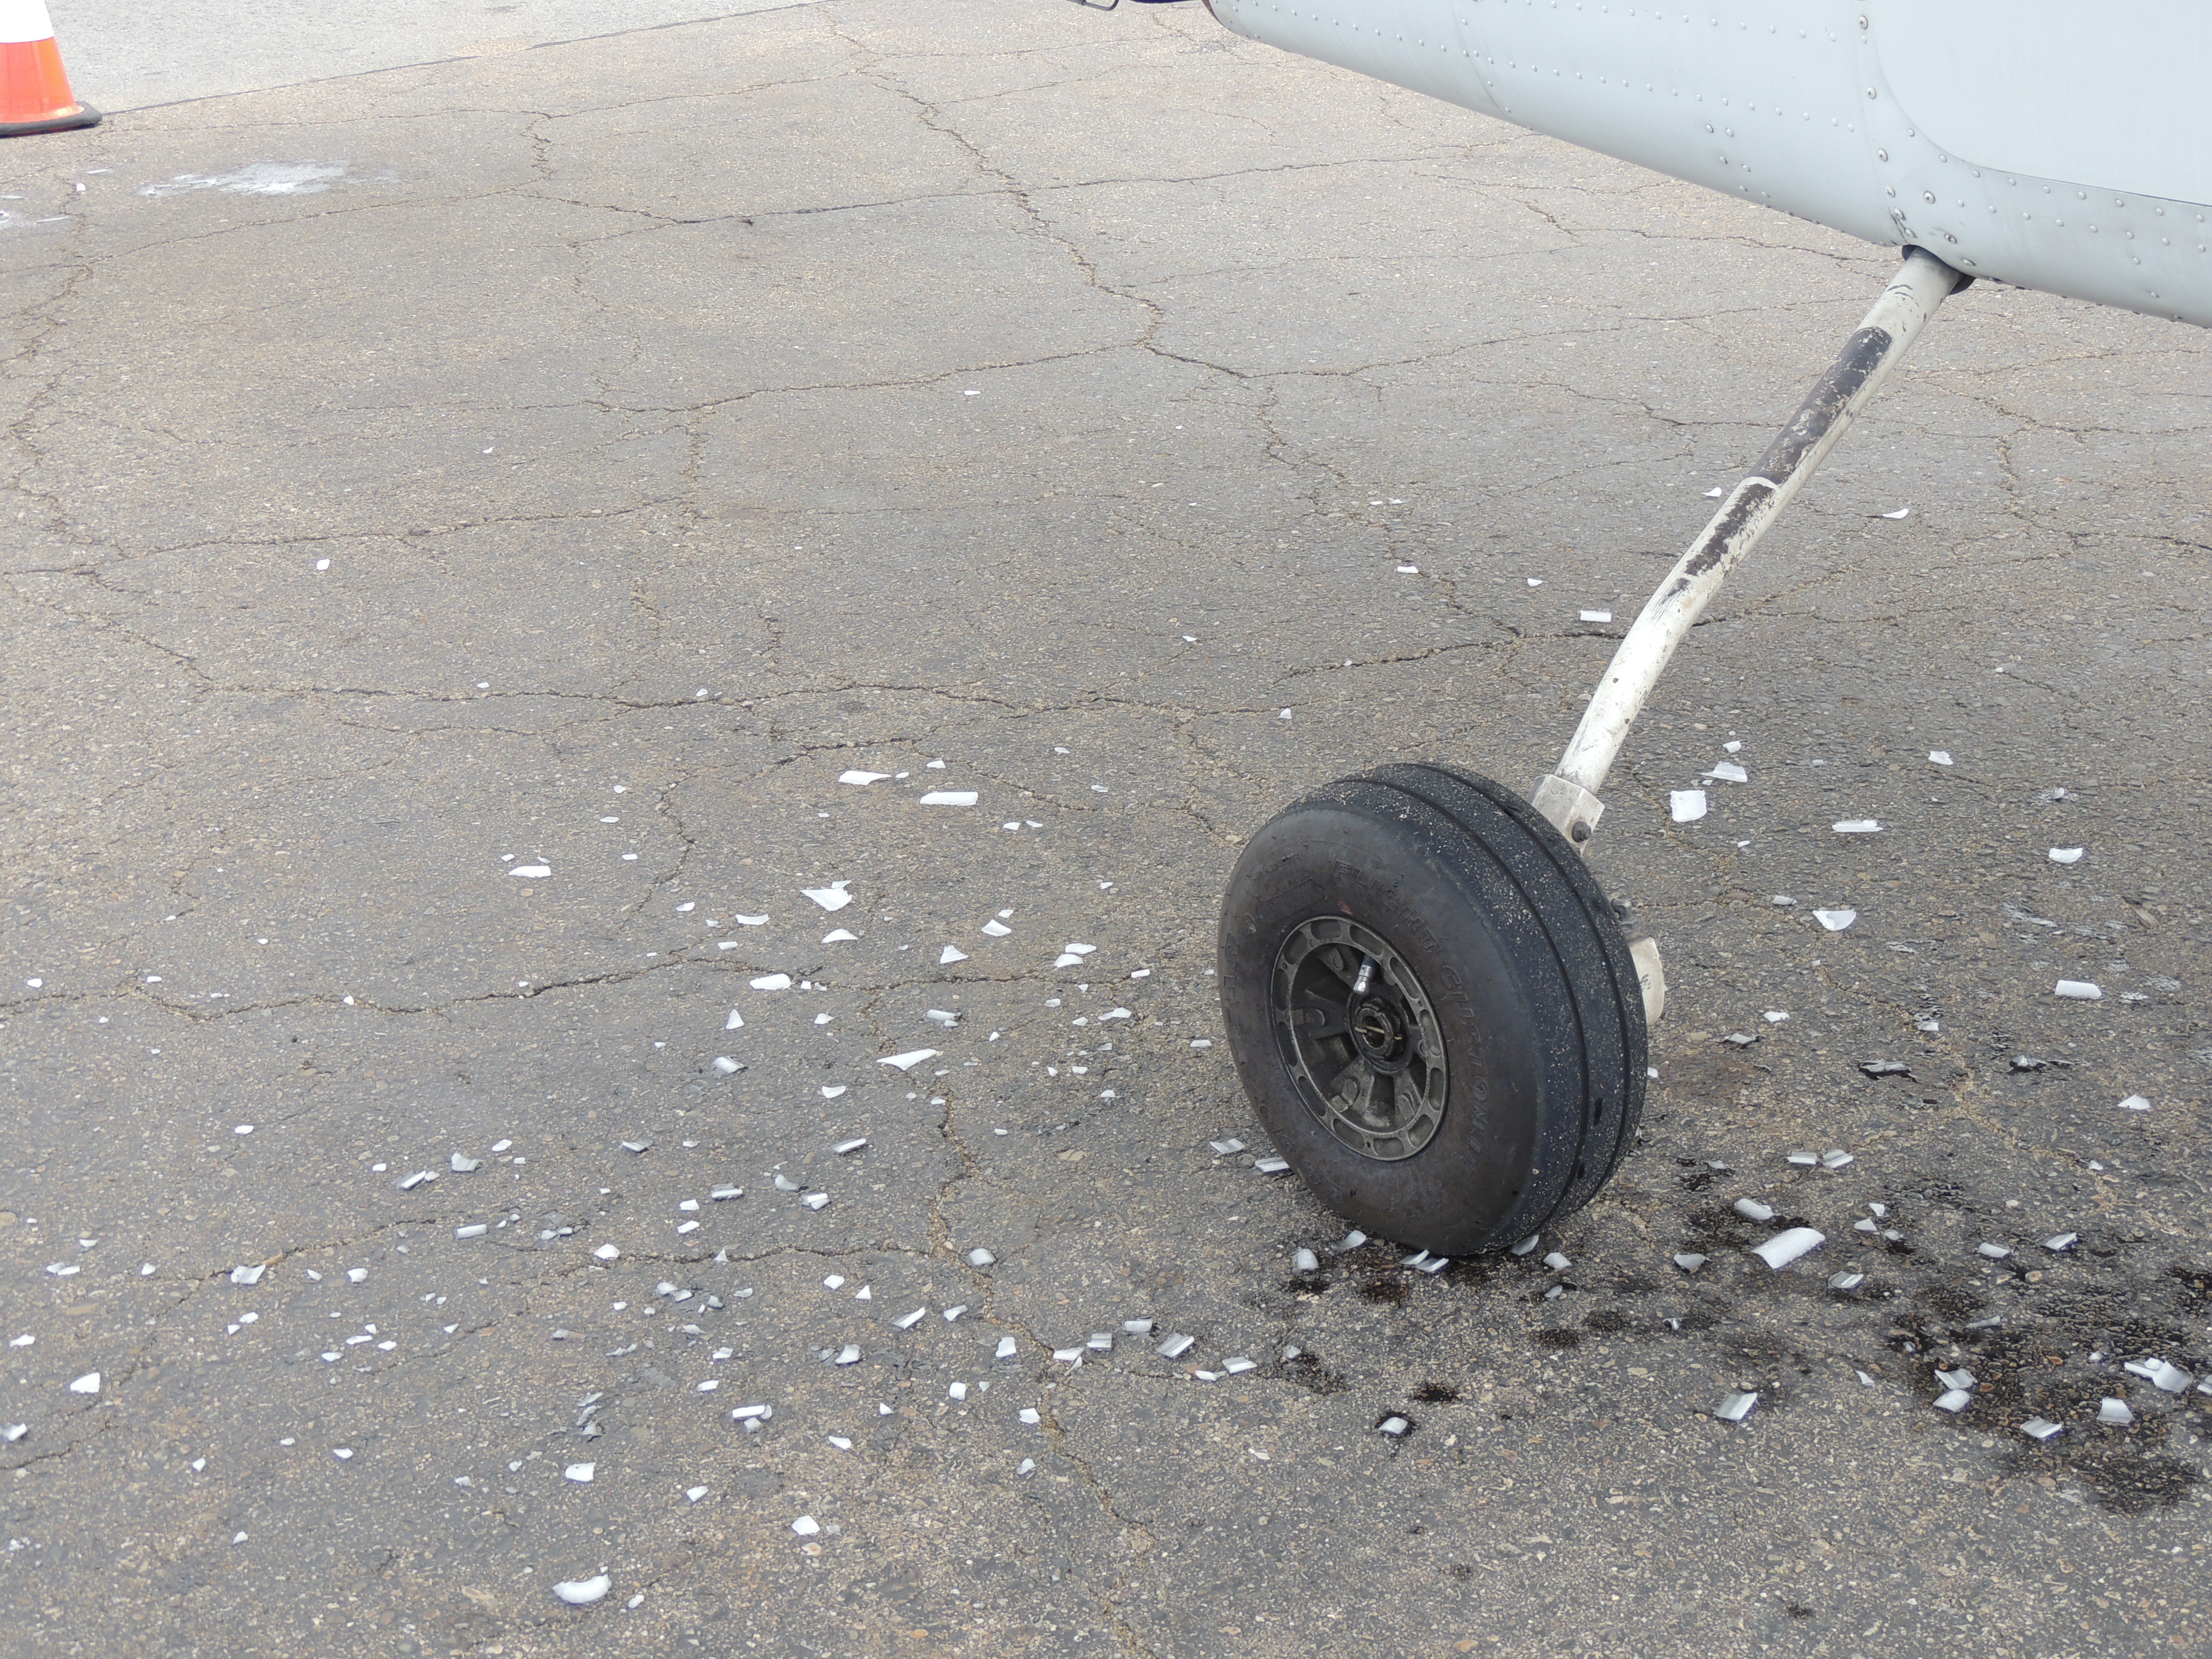 Ice that fell off our Airplane at Pittsburgh PA